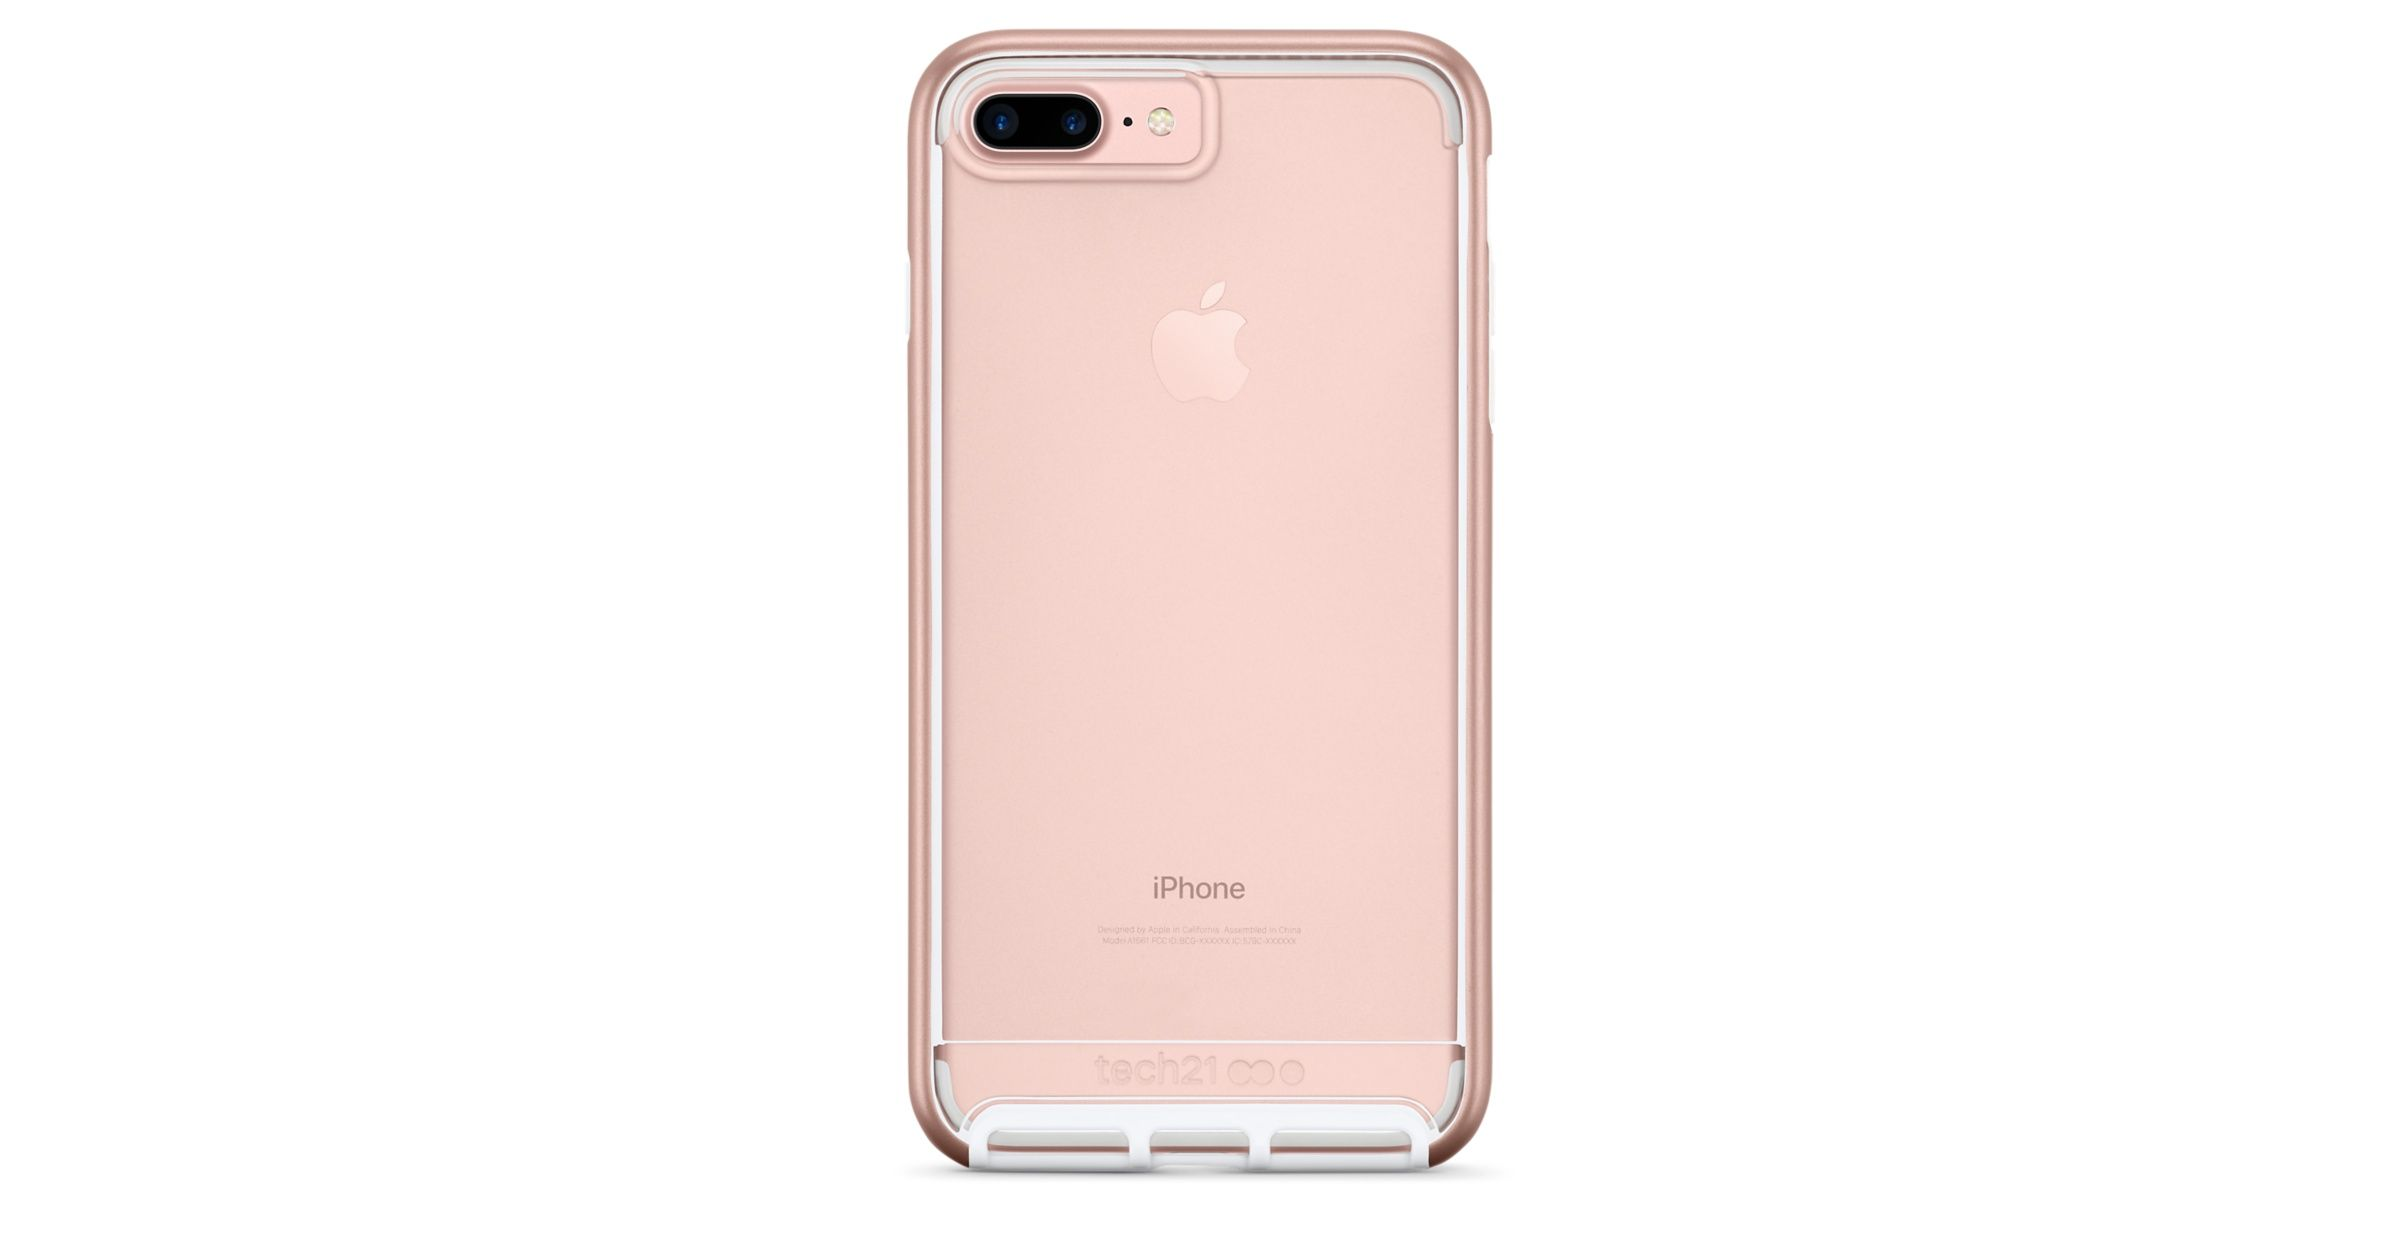 coque evo elite de tech21 pour iphone 8 plus / 7 plus